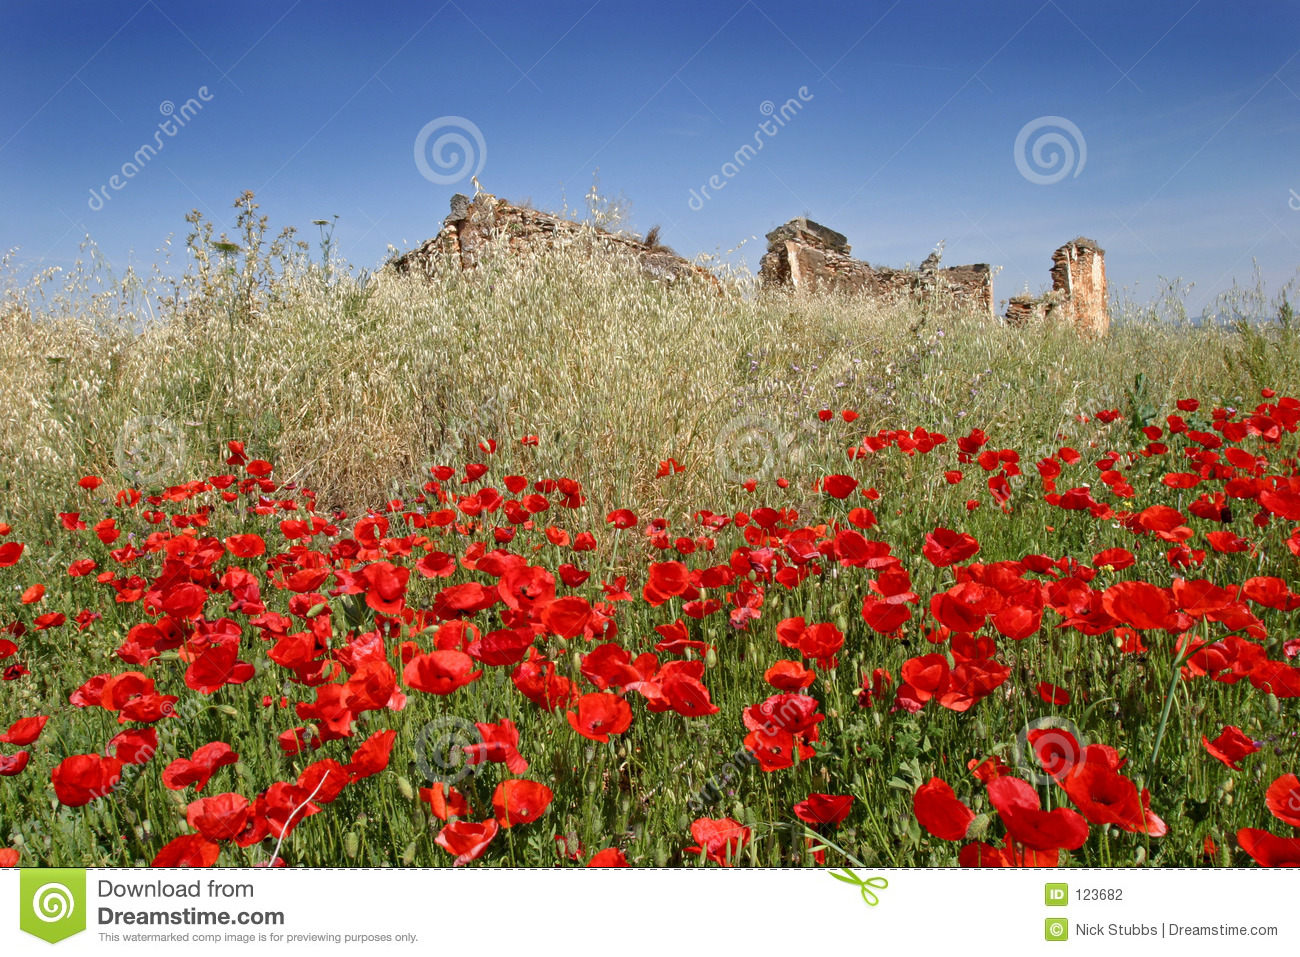 Red poppies in a sunny field with blue sky